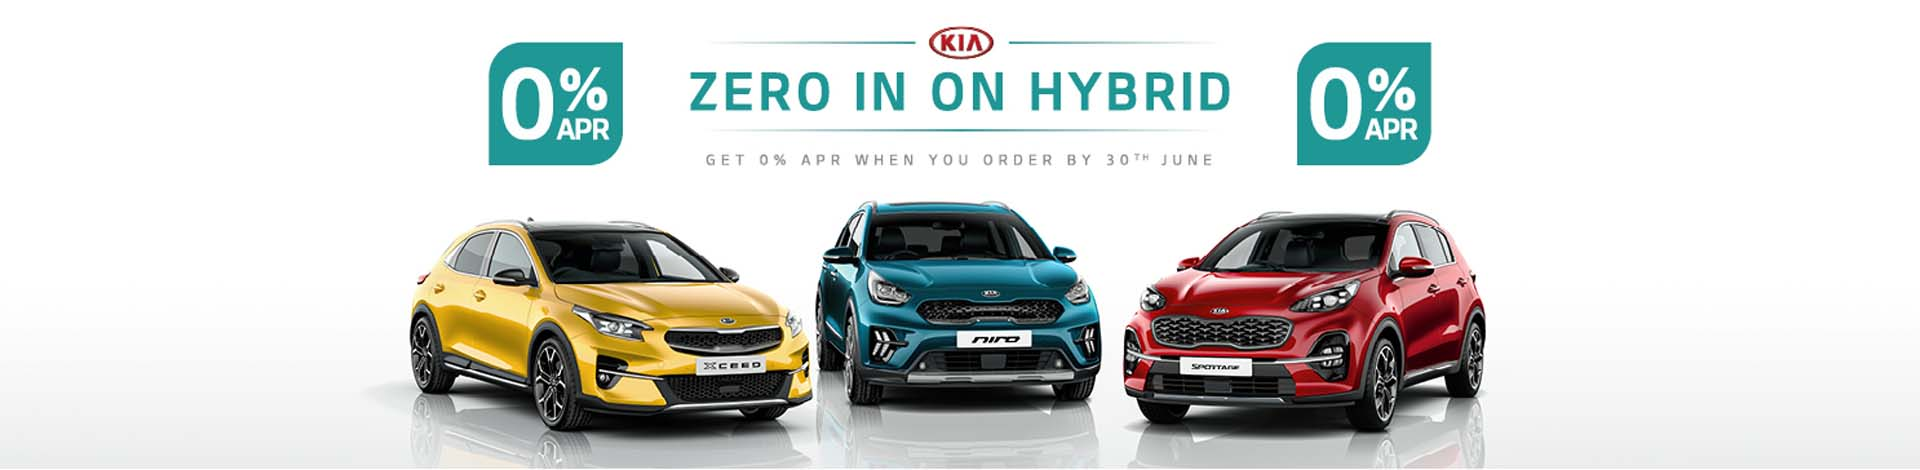 Kia's latest 0% offers available on Kia Sportage, XCeed and Niro